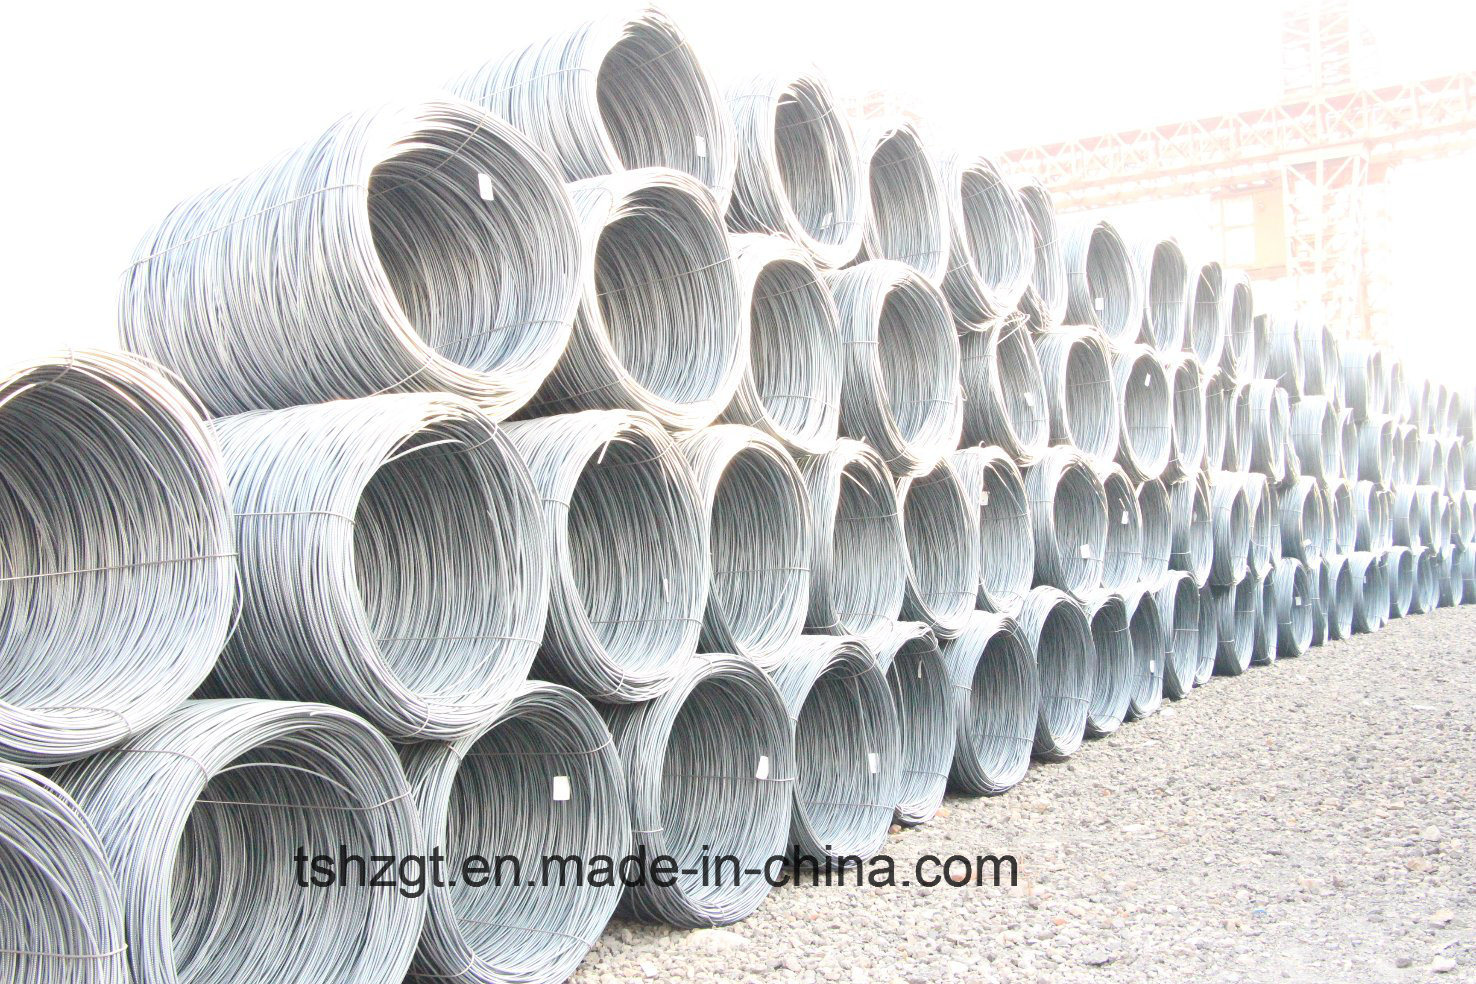 China 5.5mm Quality Low Carbon Steel Wire Rod - China Steel Wire Rod ...